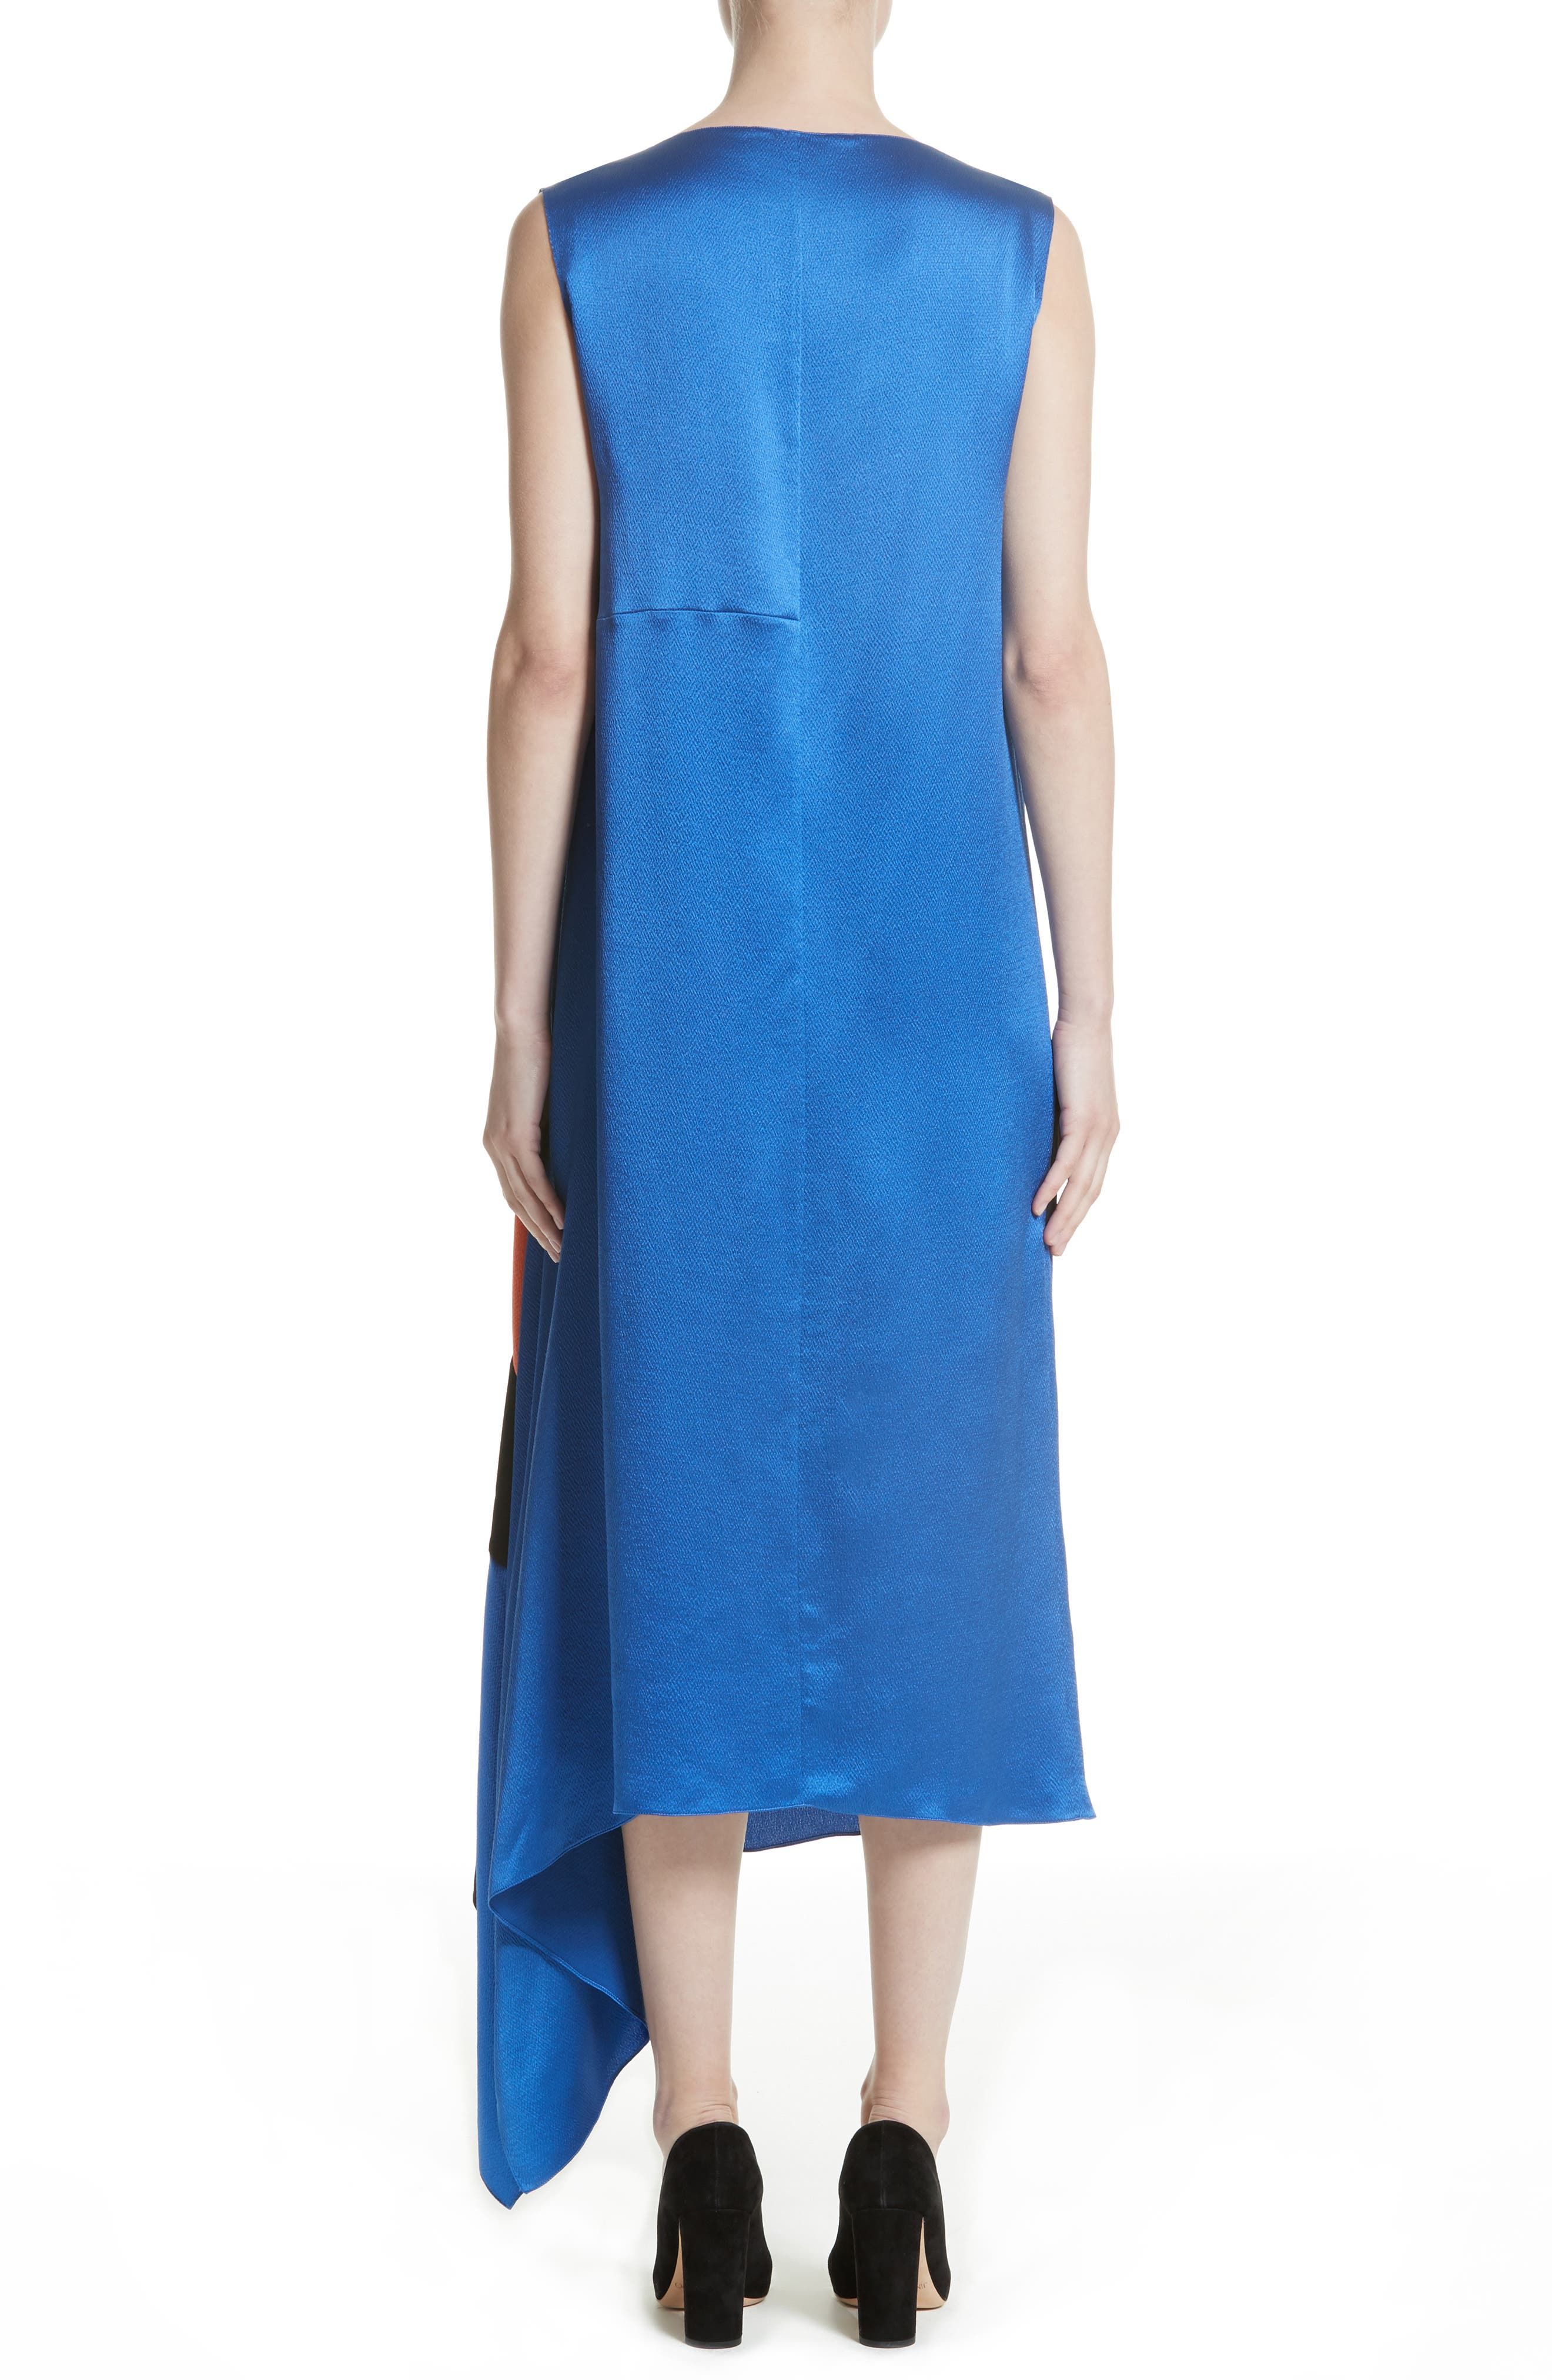 Nakato Hammered Silk, Satin and Crêpe de Chine Midi Dress,                             Alternate thumbnail 2, color,                             400